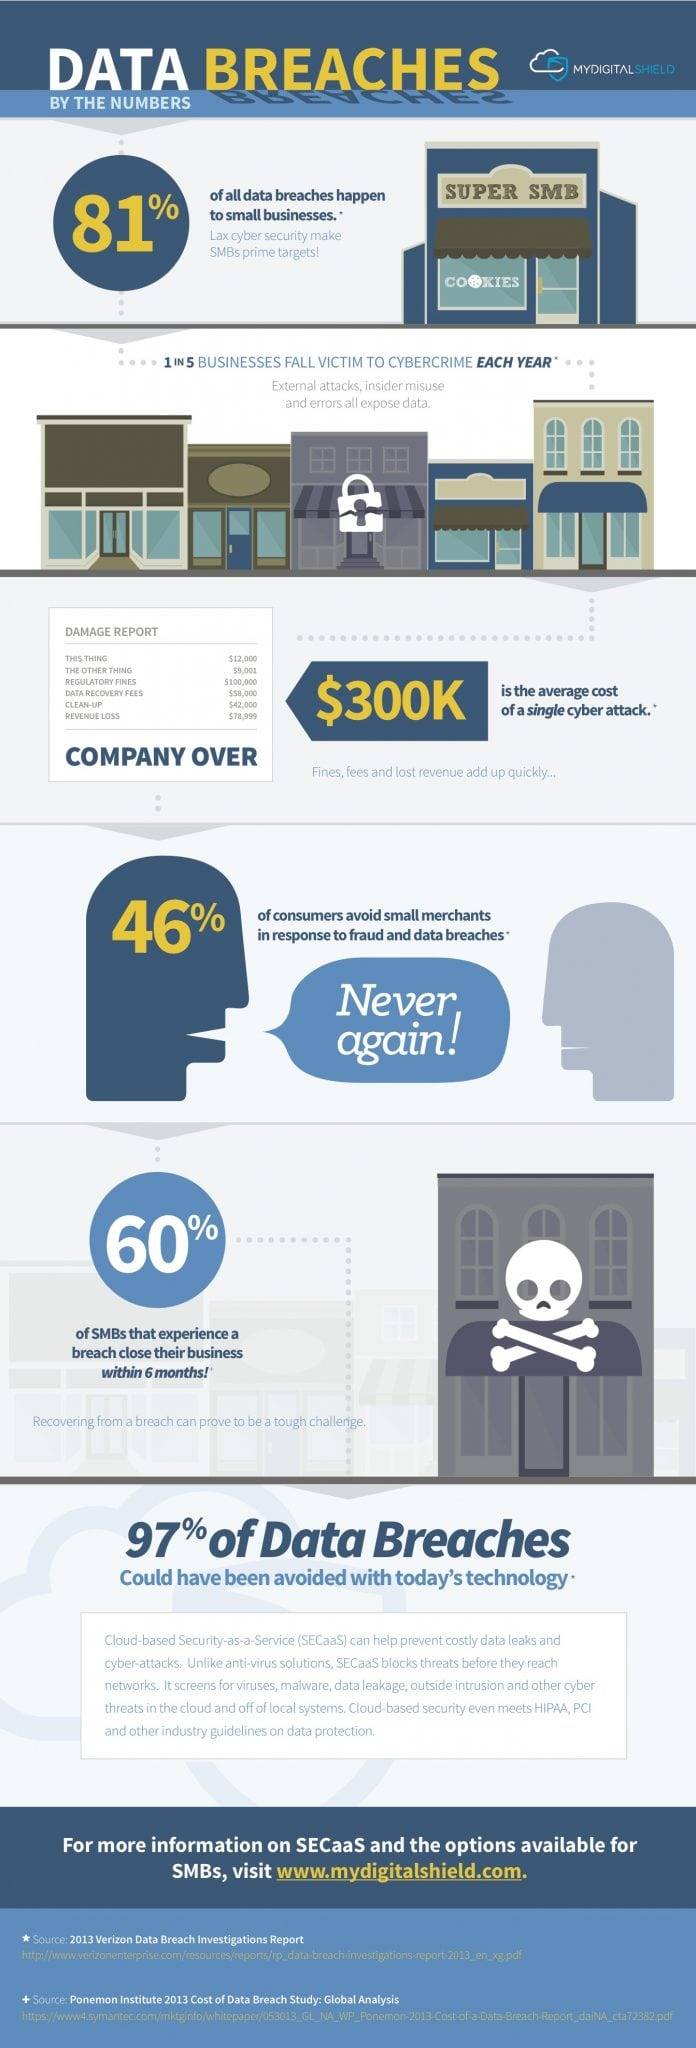 Photo of Data Breaches by the Numbers [INFOGRAPHIC]